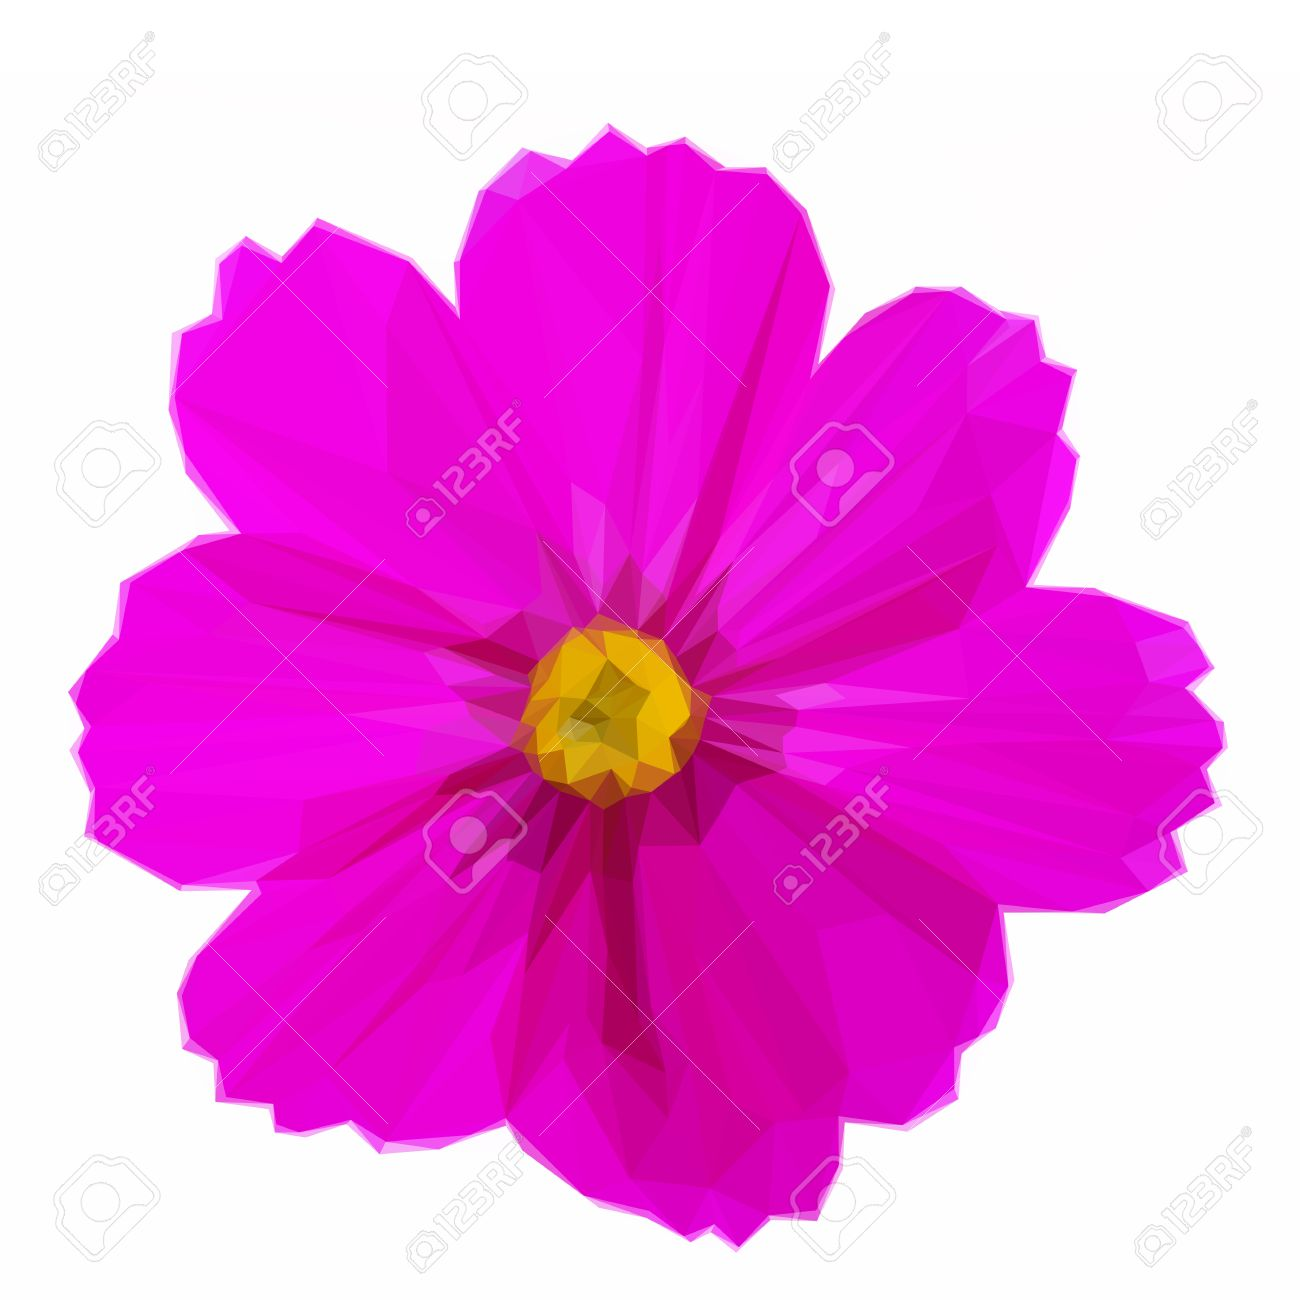 Low poly illustration one cosmos dark pink flower on white low poly illustration one cosmos dark pink flower on white background stock vector 67396421 mightylinksfo Images